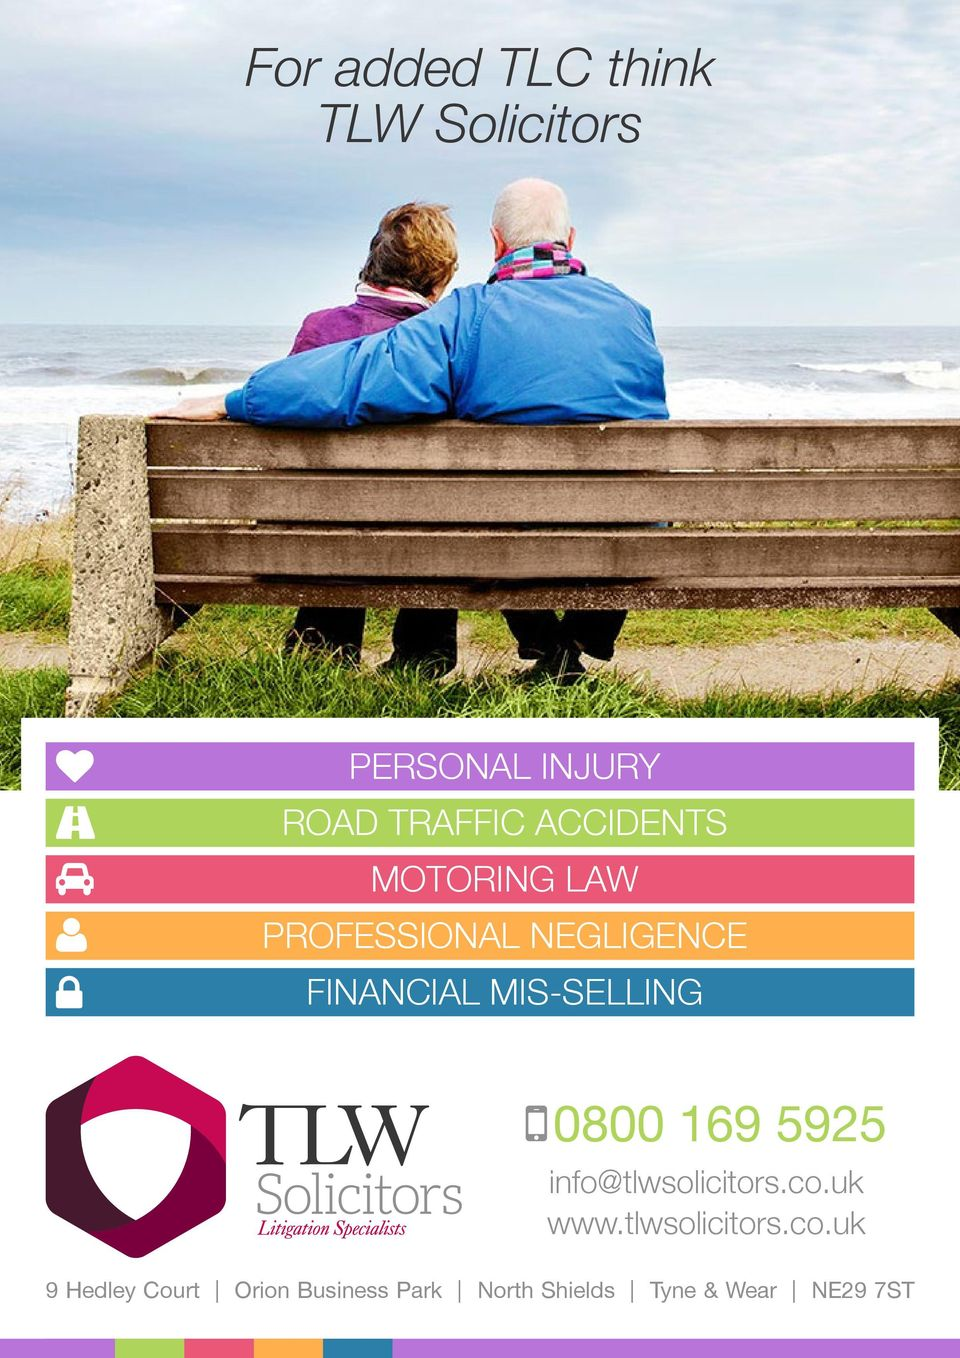 MIS-SELLING 0800 169 5925 info@tlwsolicitors.co.uk www.